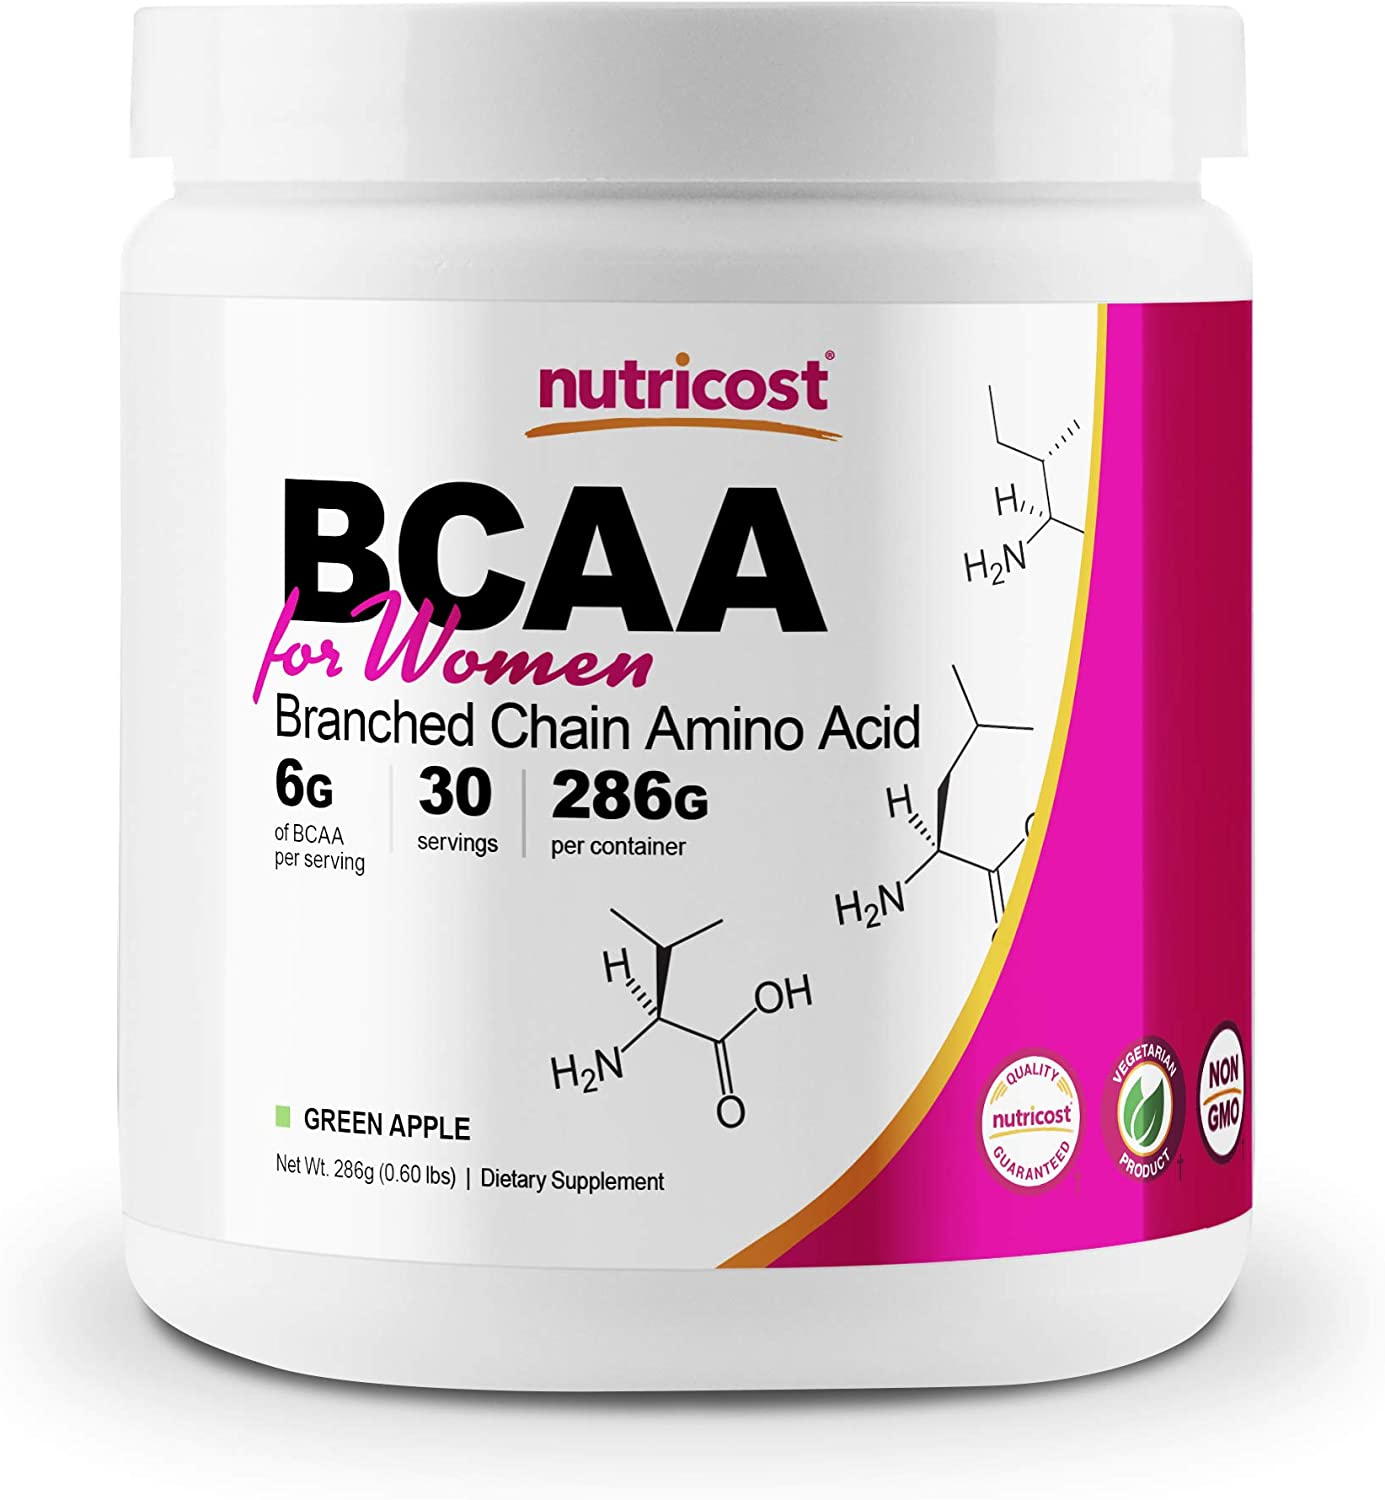 Nutricost BCAA for Women (Green Apple, 30 Servings) - Formulated Specifically for Women - Non-GMO and Gluten-Free